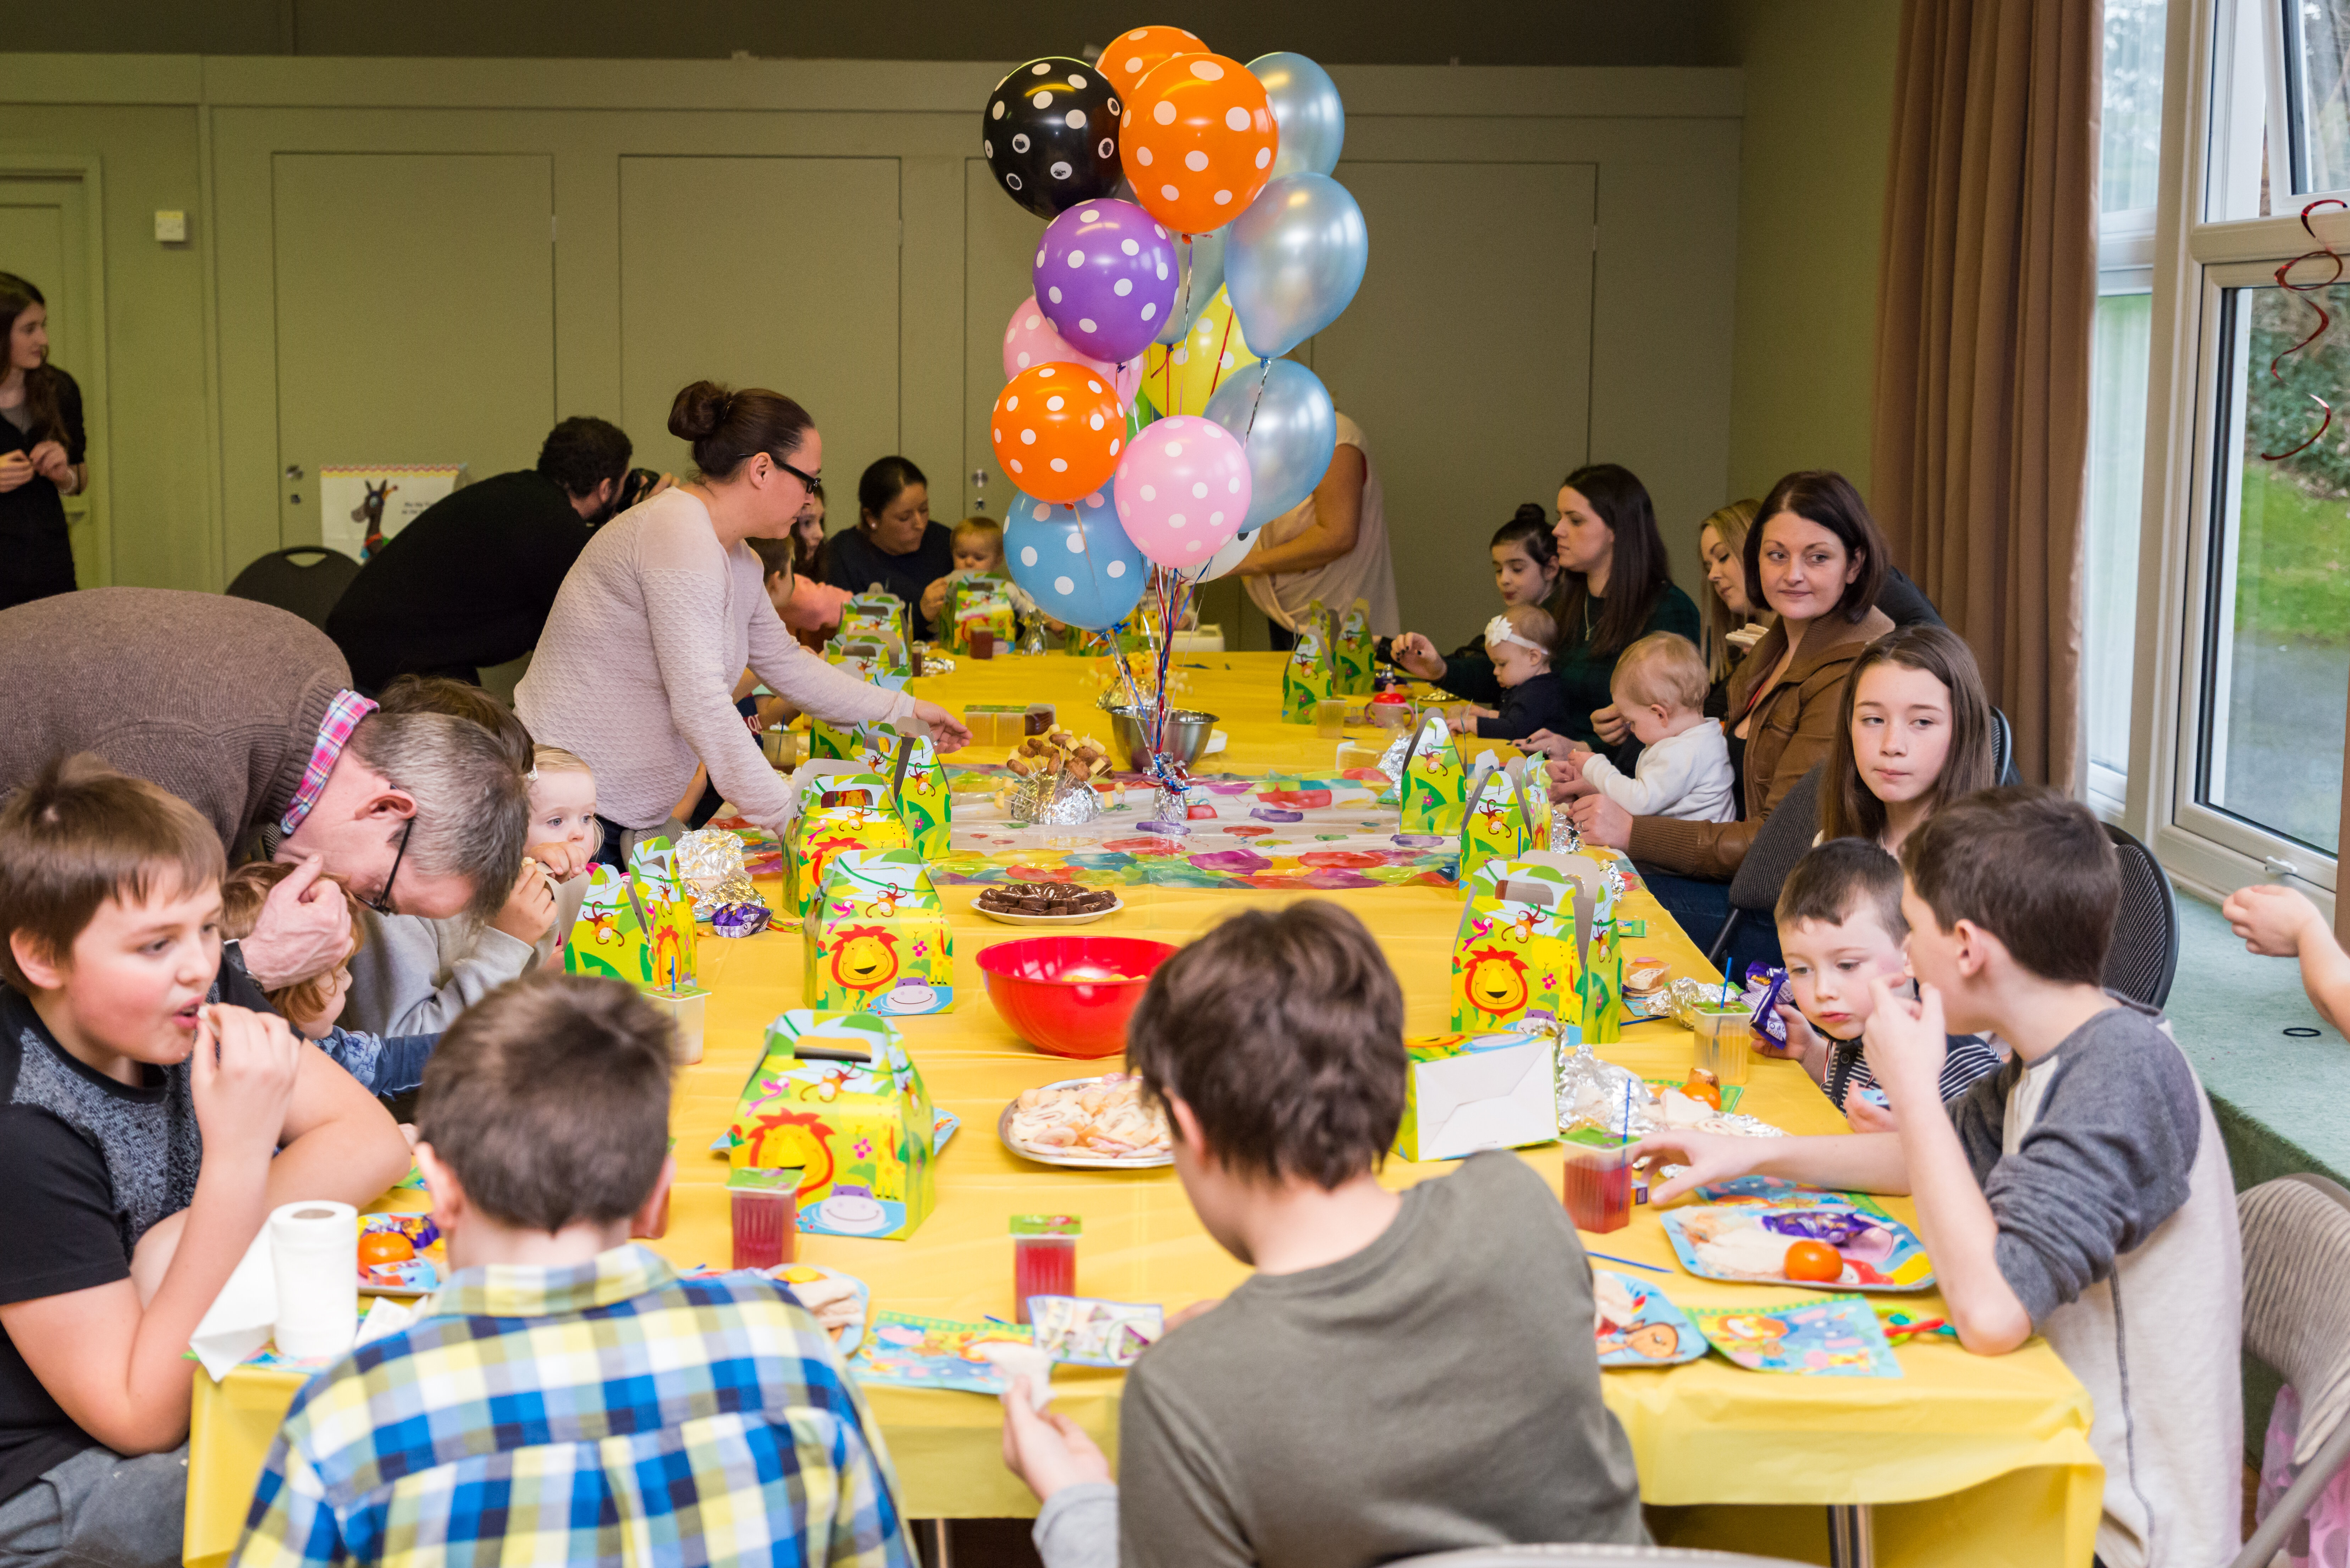 Children's party photography